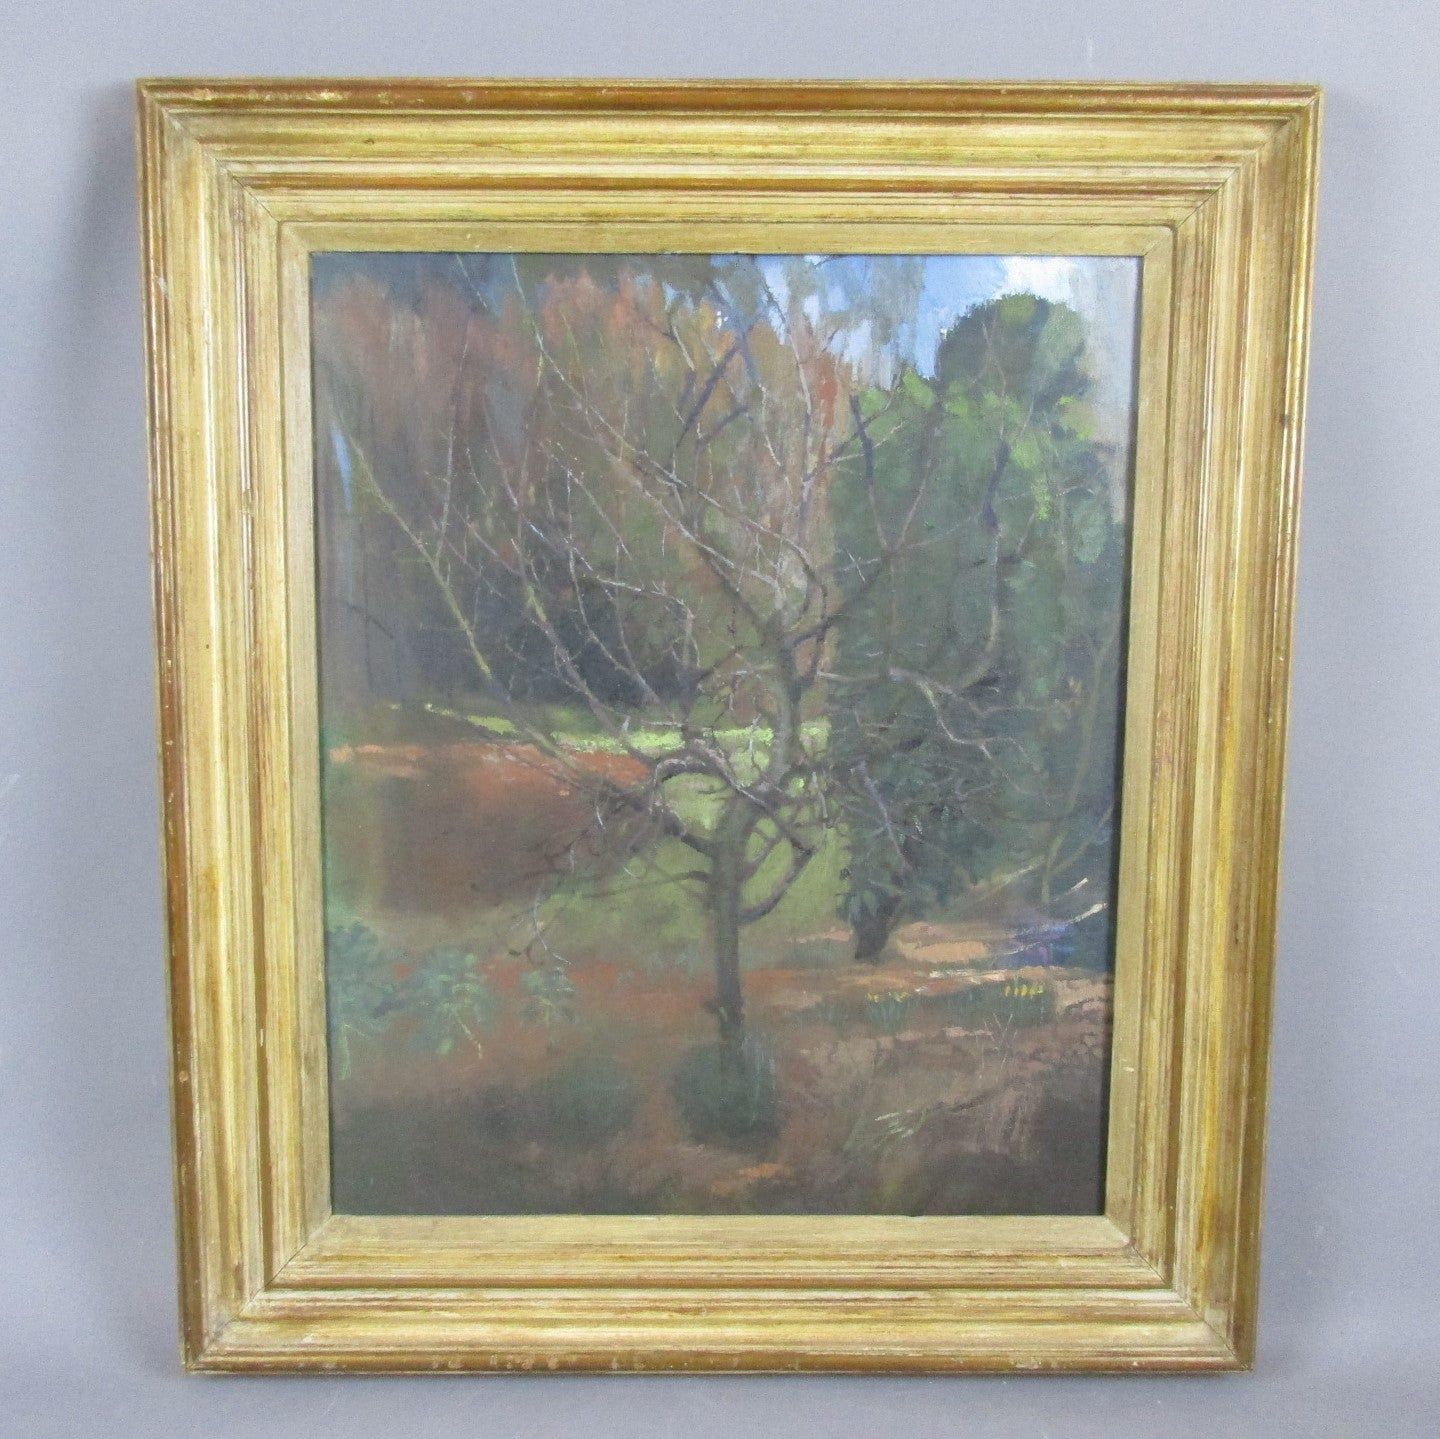 Larger Oil on Canvas Painting 'Garden in Winter' by T Pilcher Vintage c1970